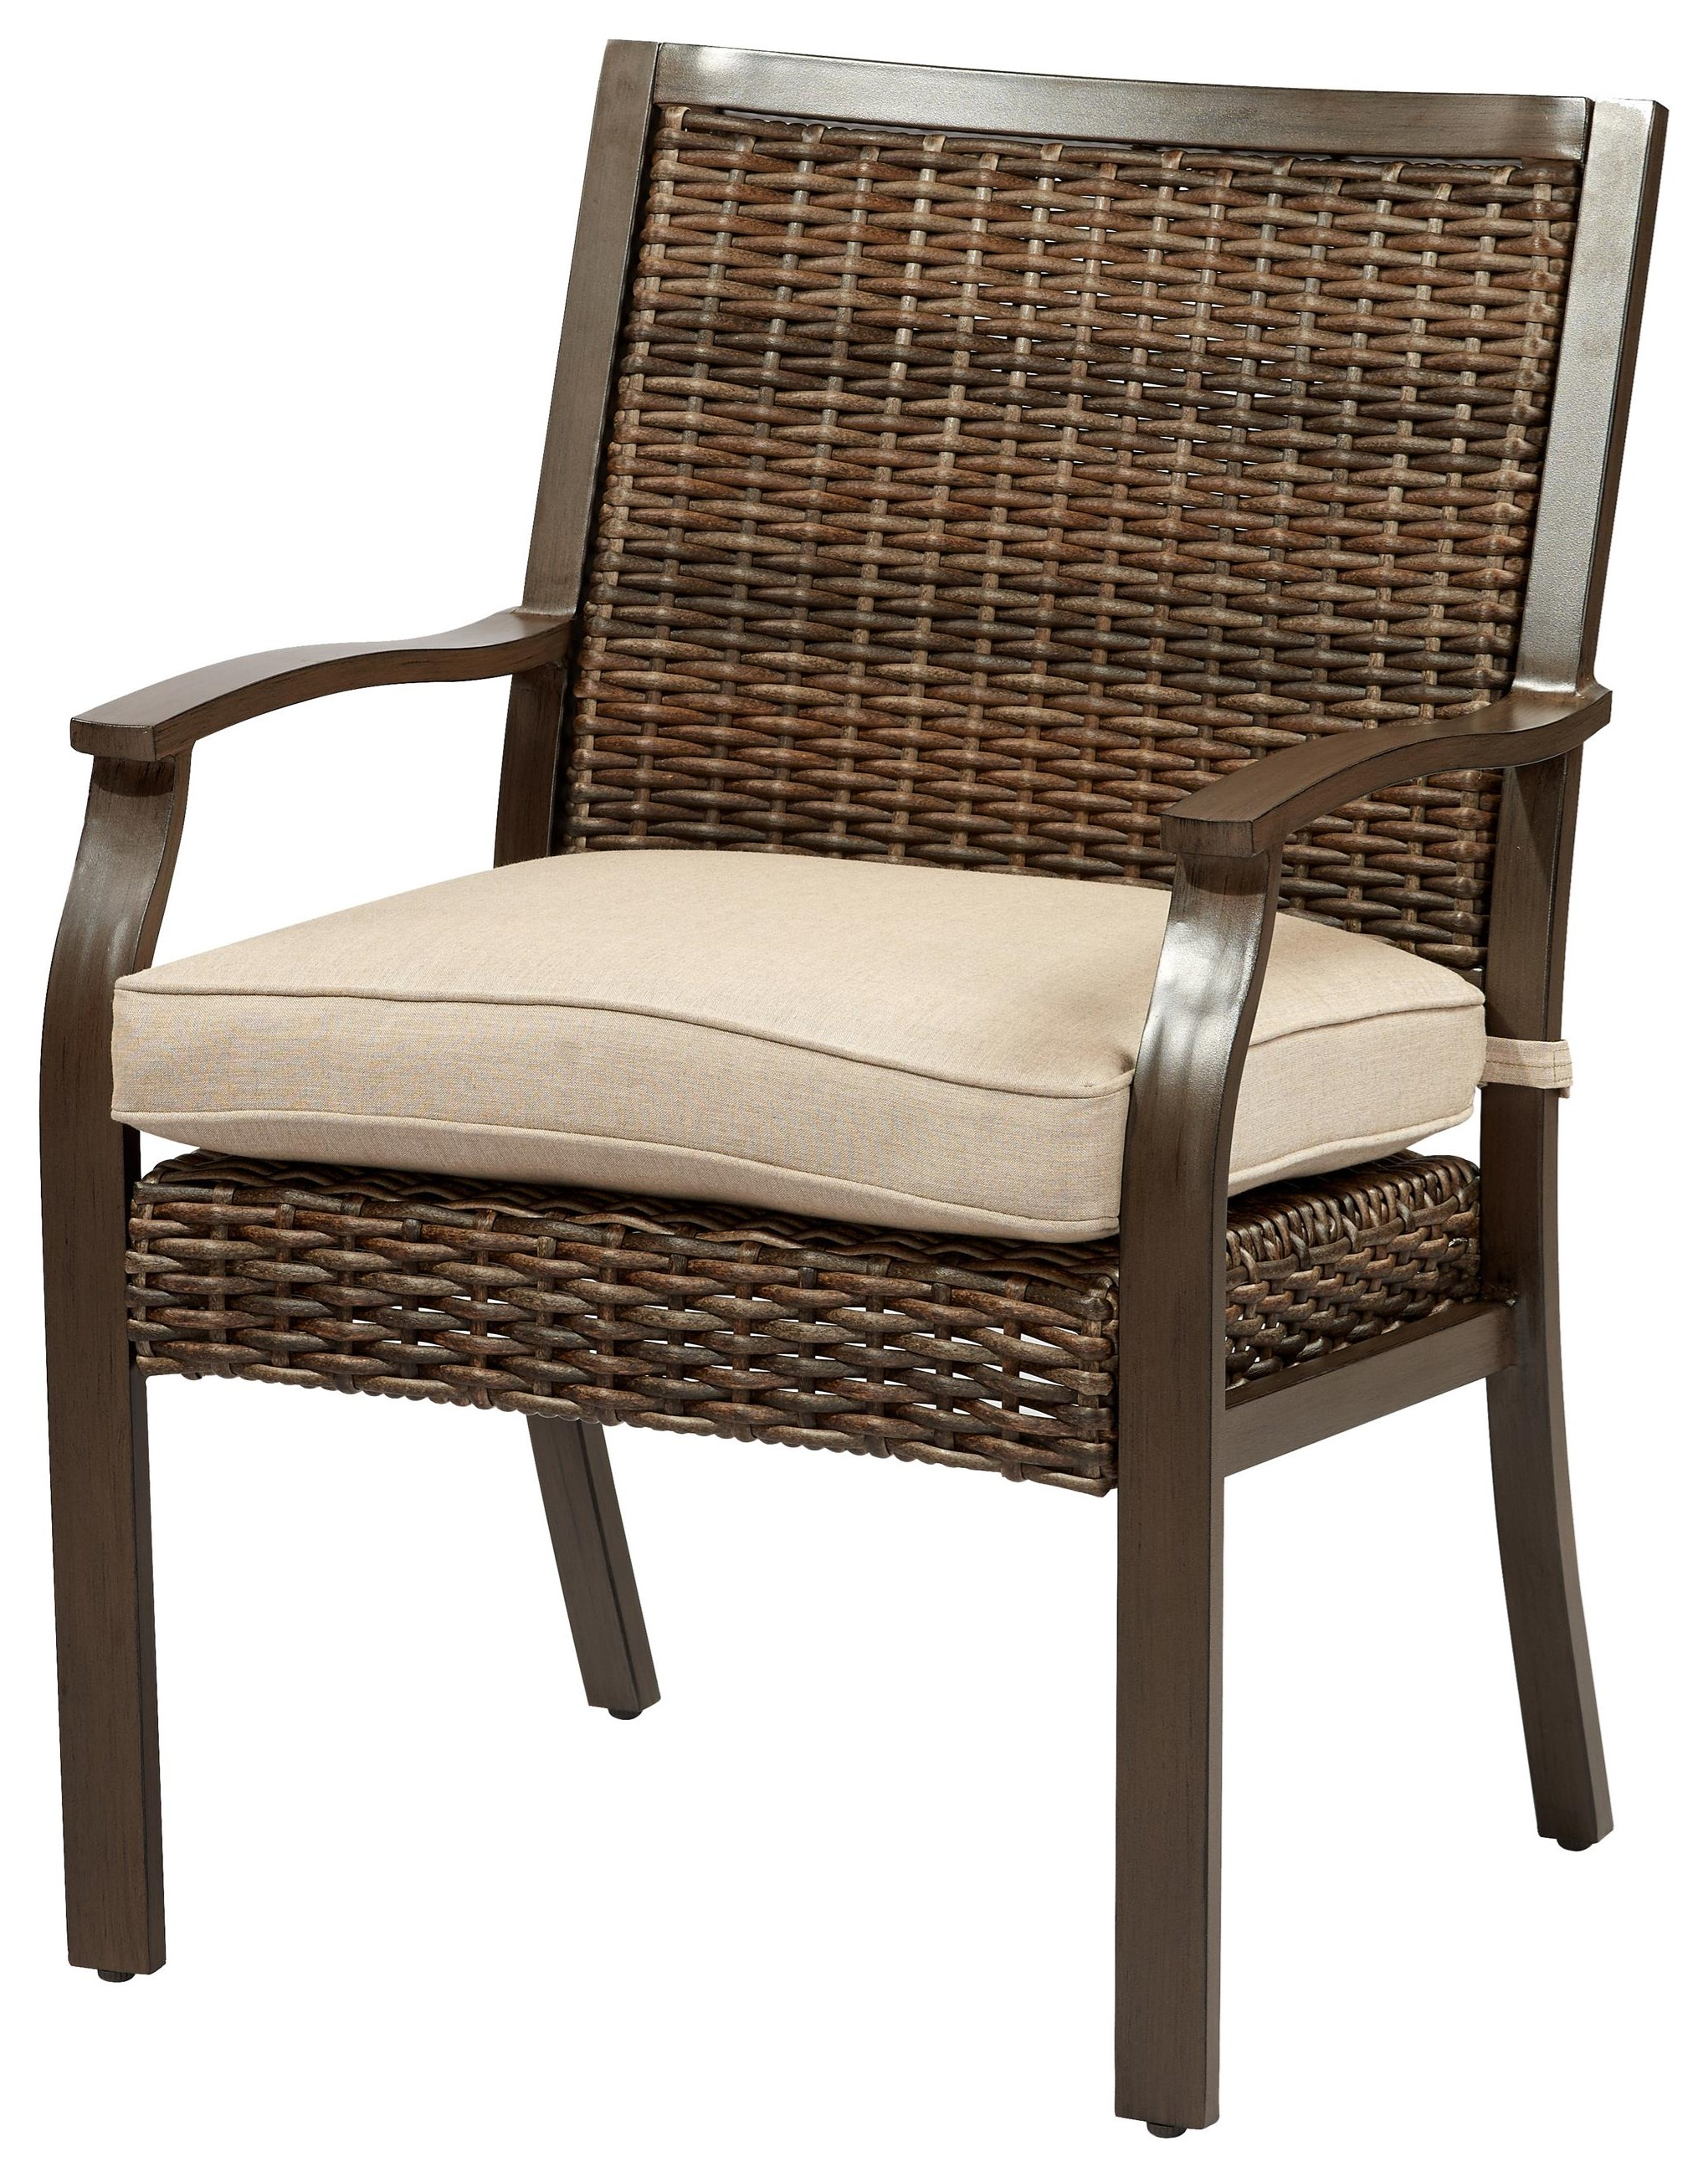 Trenton Dining Chair with Seat Cushion by Apricity Outdoor at Johnny Janosik